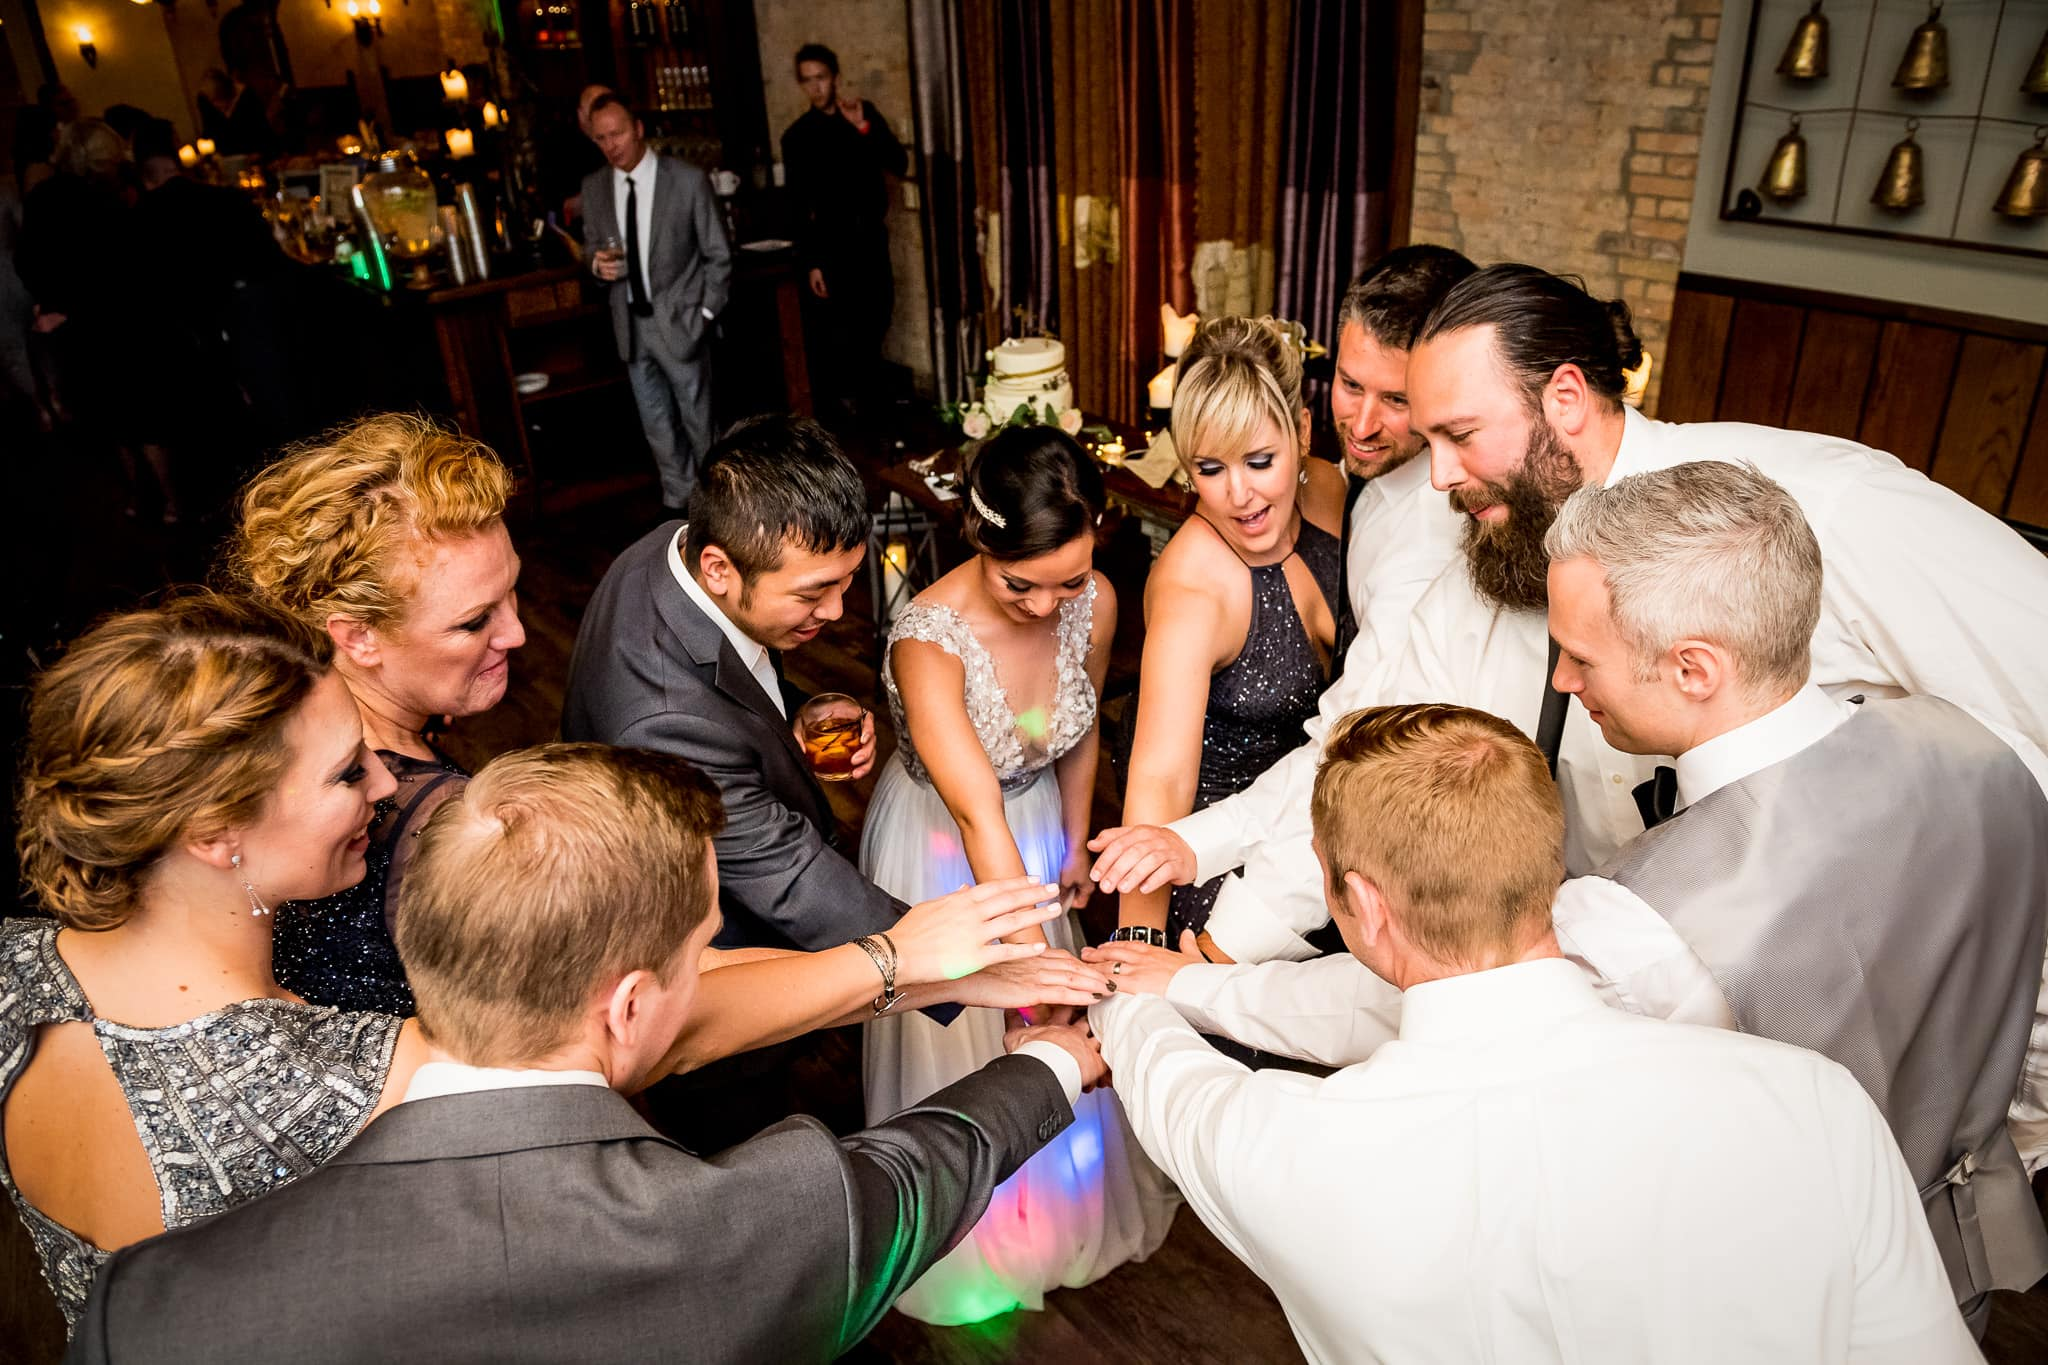 Wedding party breakdown on the dance floor in the River Room at Aster Cafe during the wedding reception 2